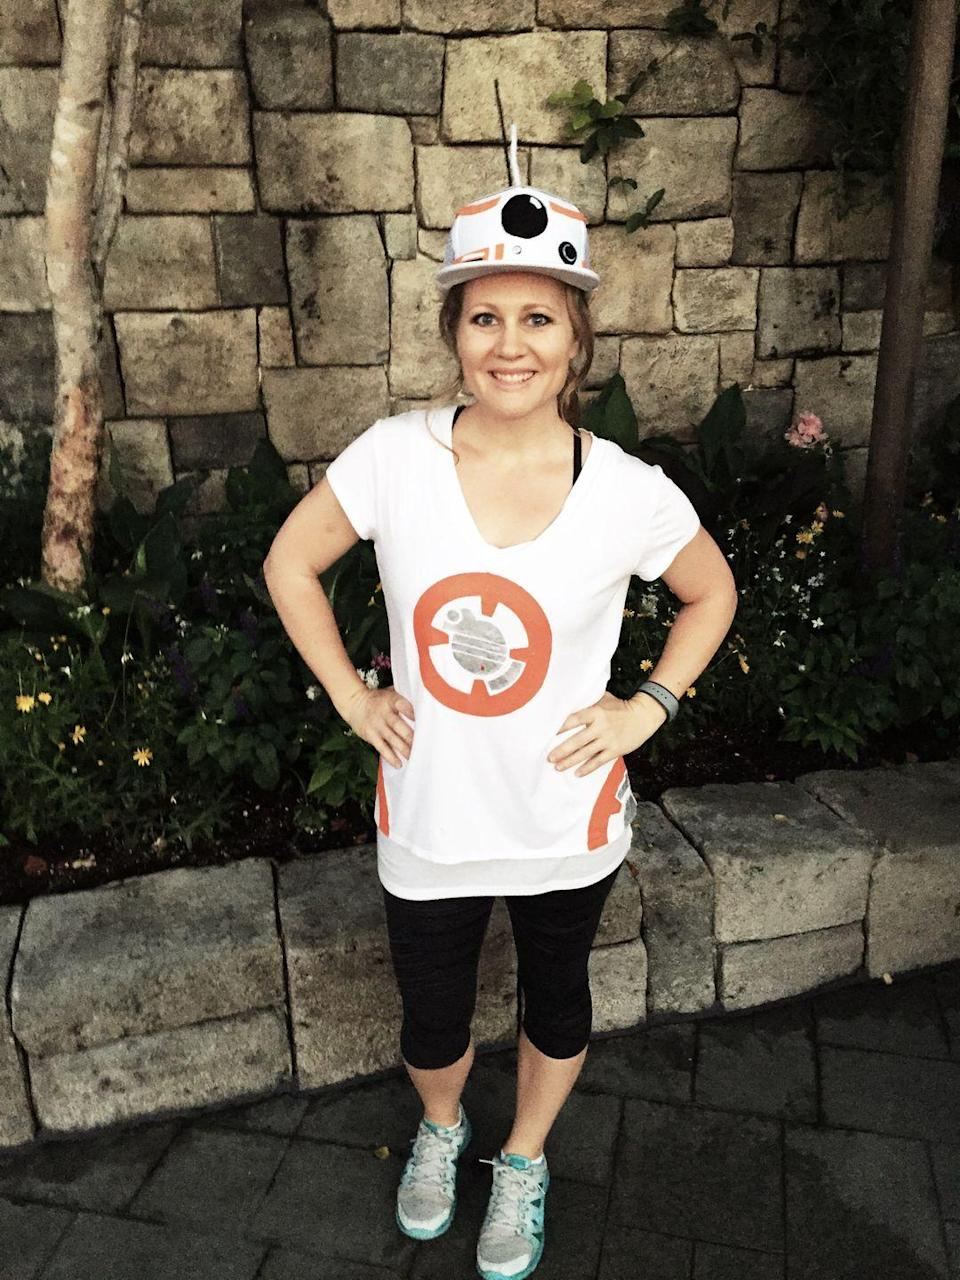 """<p>Use the force to quickly turn a white t-shirt and hat into this easy <a href=""""https://www.countryliving.com/diy-crafts/g21287723/diy-star-wars-costumes/"""" rel=""""nofollow noopener"""" target=""""_blank"""" data-ylk=""""slk:Star Wars costume"""" class=""""link rapid-noclick-resp""""><em>Star Wars</em> costume</a> for women.</p><p><strong>Get the tutorial at <a href=""""https://allfortheboys.com/bb-8/"""" rel=""""nofollow noopener"""" target=""""_blank"""" data-ylk=""""slk:All for the Boys"""" class=""""link rapid-noclick-resp"""">All for the Boys</a>.</strong></p><p><strong><a class=""""link rapid-noclick-resp"""" href=""""https://www.amazon.com/Hanes-Womens-T-Shirt-Medium-White/dp/B00KRYLKH6/?tag=syn-yahoo-20&ascsubtag=%5Bartid%7C10050.g.4571%5Bsrc%7Cyahoo-us"""" rel=""""nofollow noopener"""" target=""""_blank"""" data-ylk=""""slk:SHOP WHITE T-SHIRT"""">SHOP WHITE T-SHIRT</a></strong></p>"""